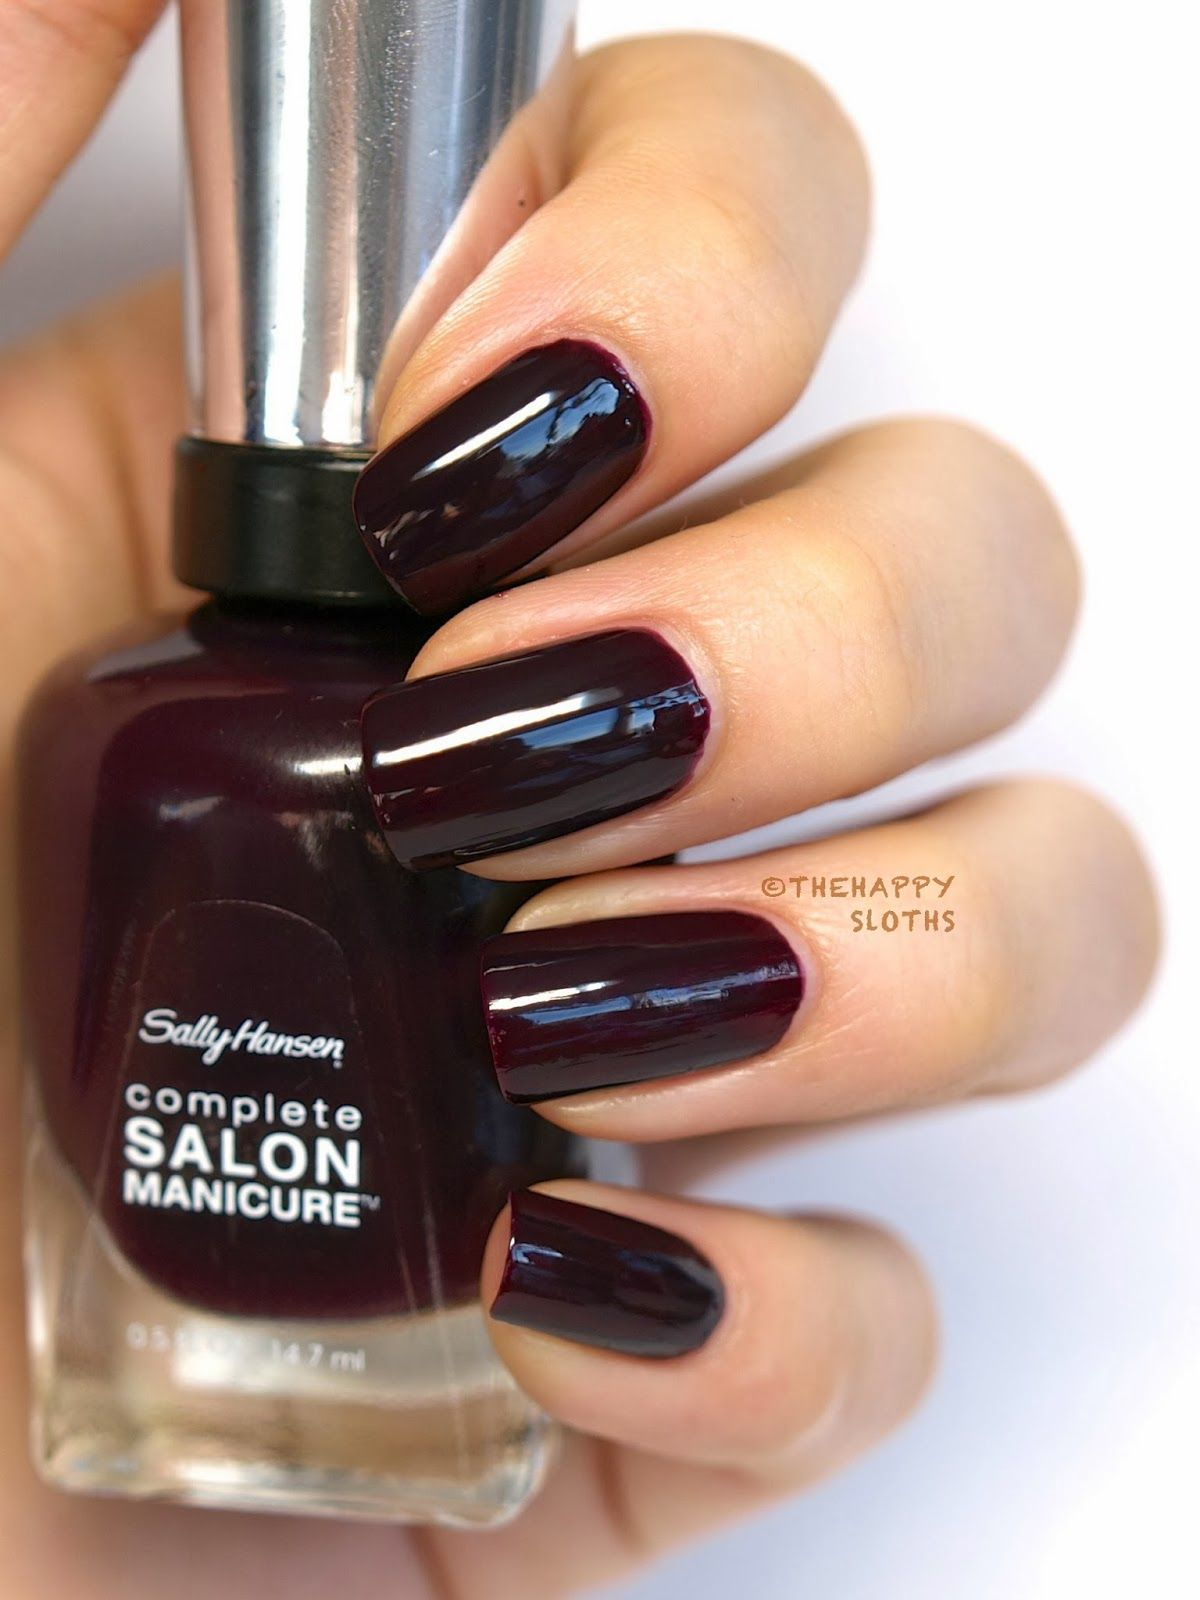 The Hy Sloths Sally Hansen Csmtko Complete Salon Manicure Nail Polish In Jaded